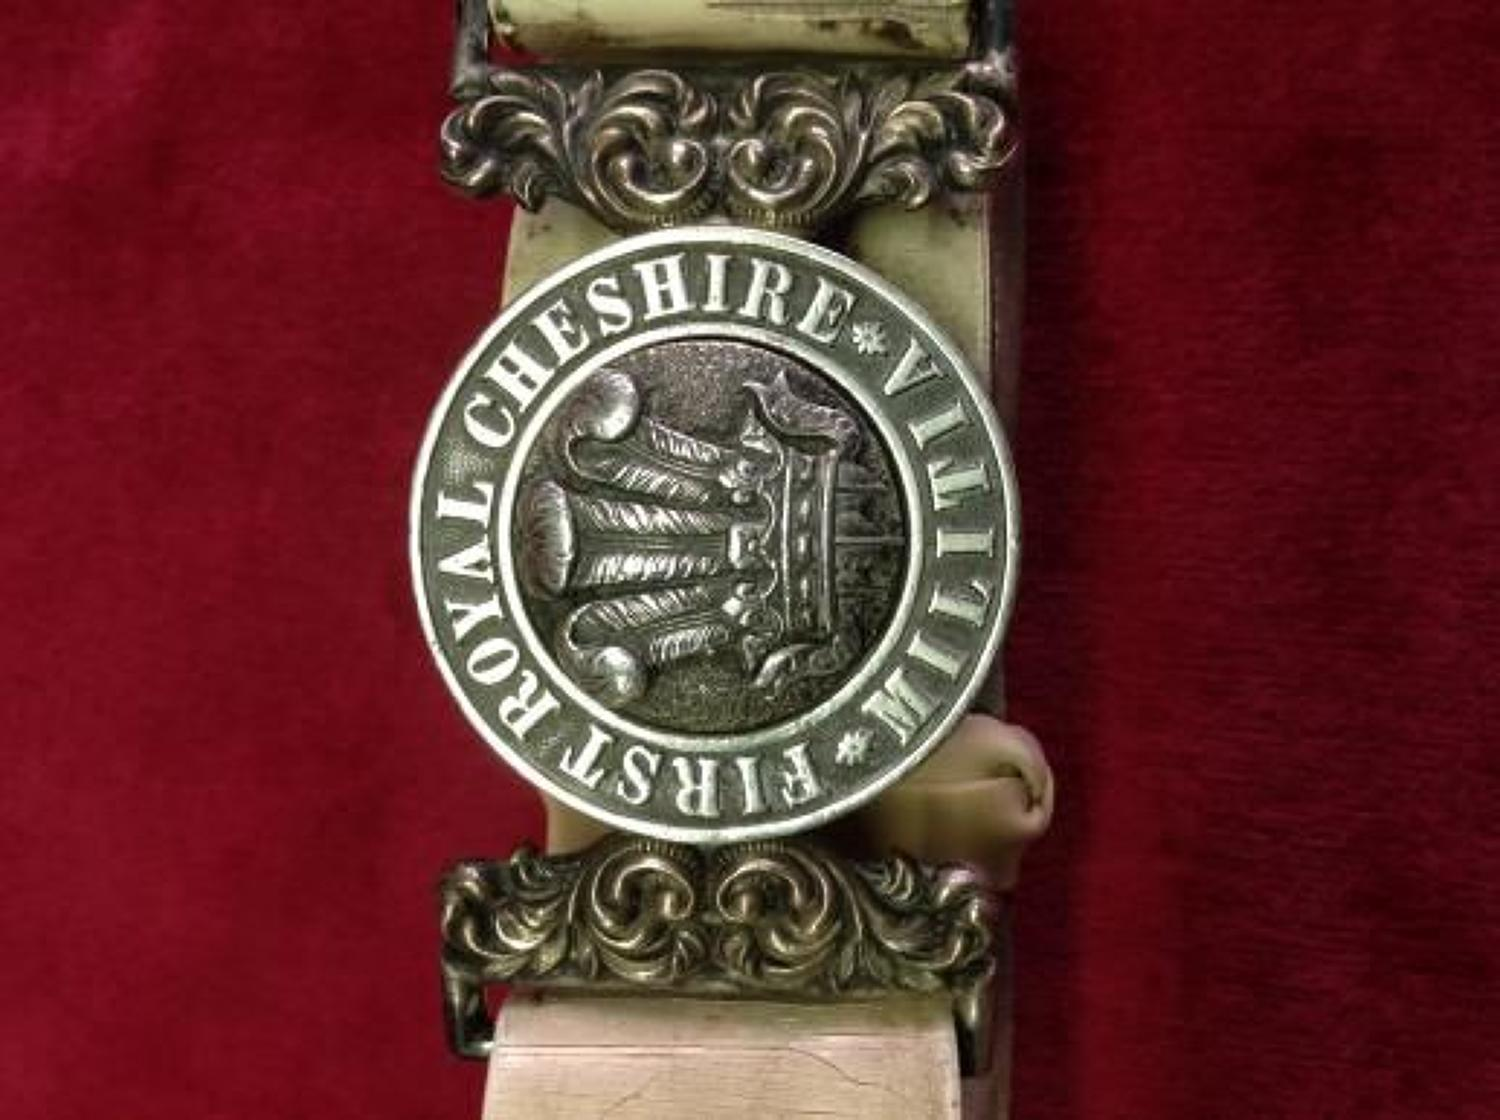 First Royal Cheshire Militia Officers Waist belt and Waist Belt Clasp